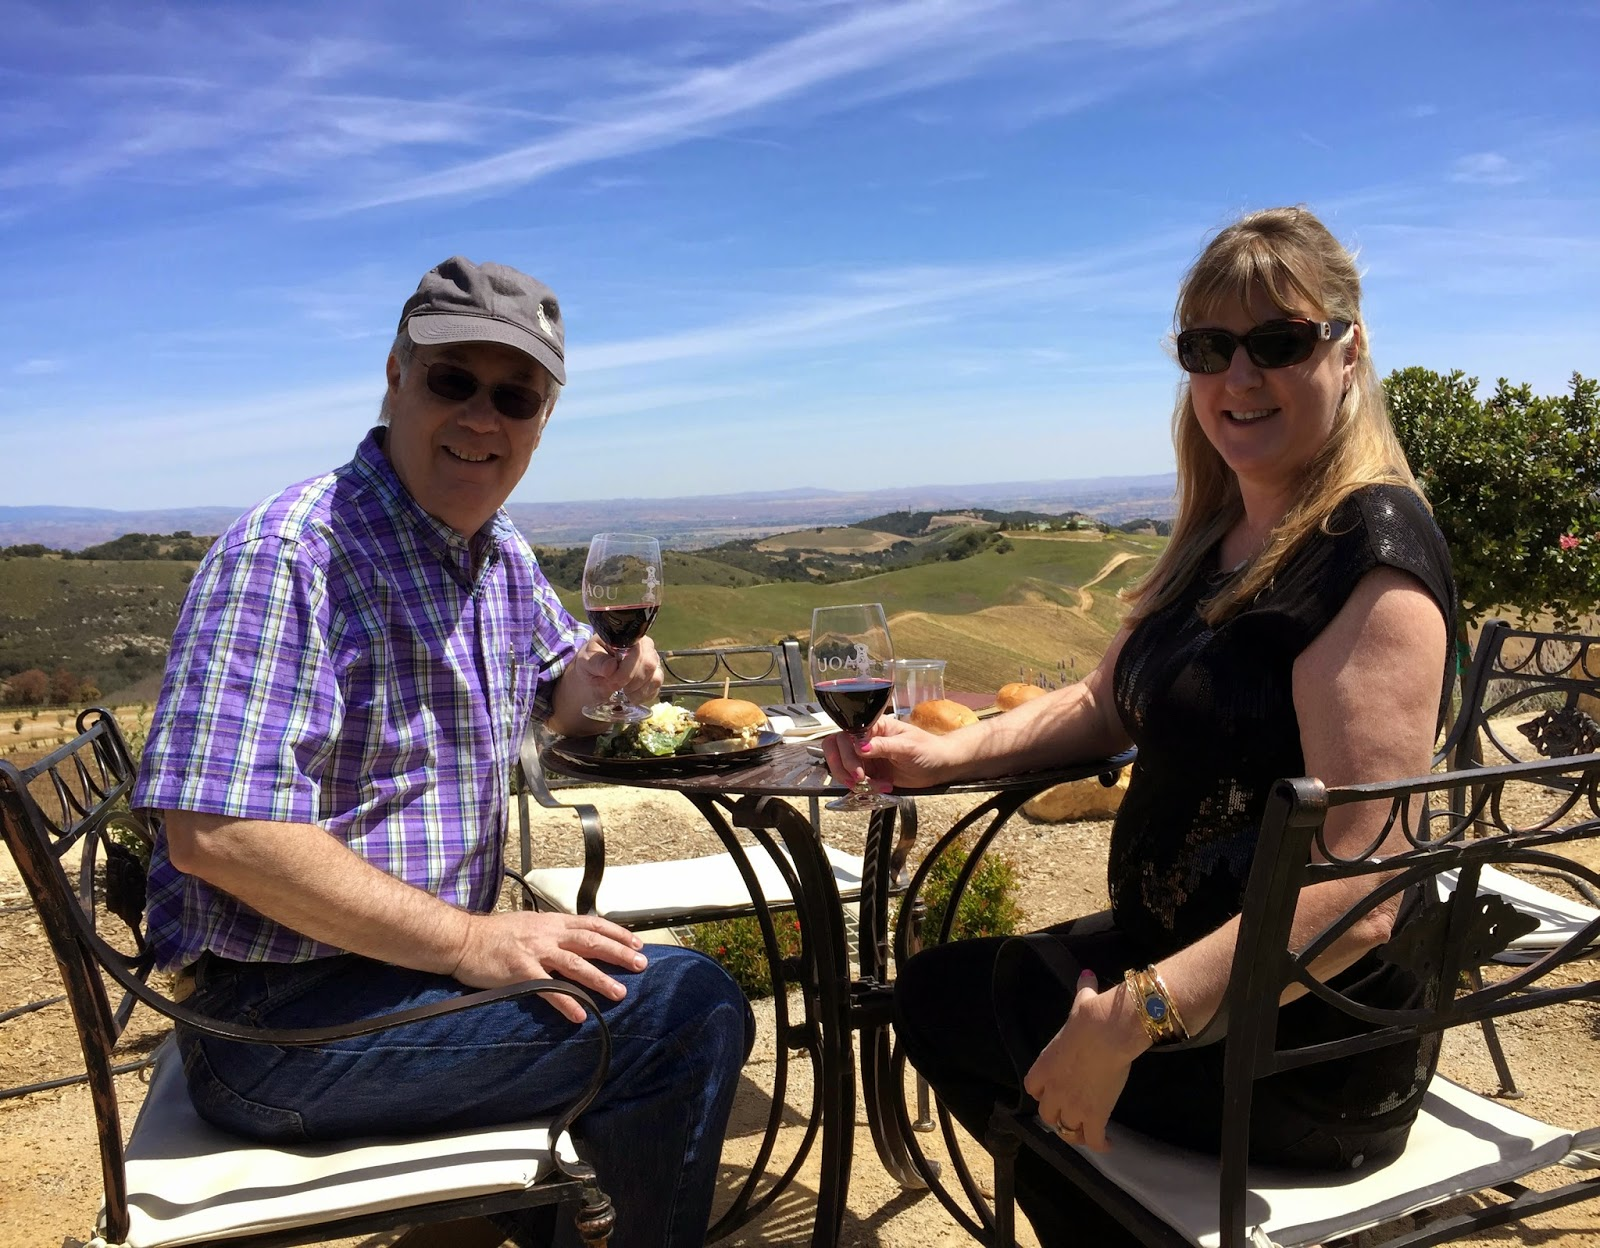 The DAOU Vineyards and Winery